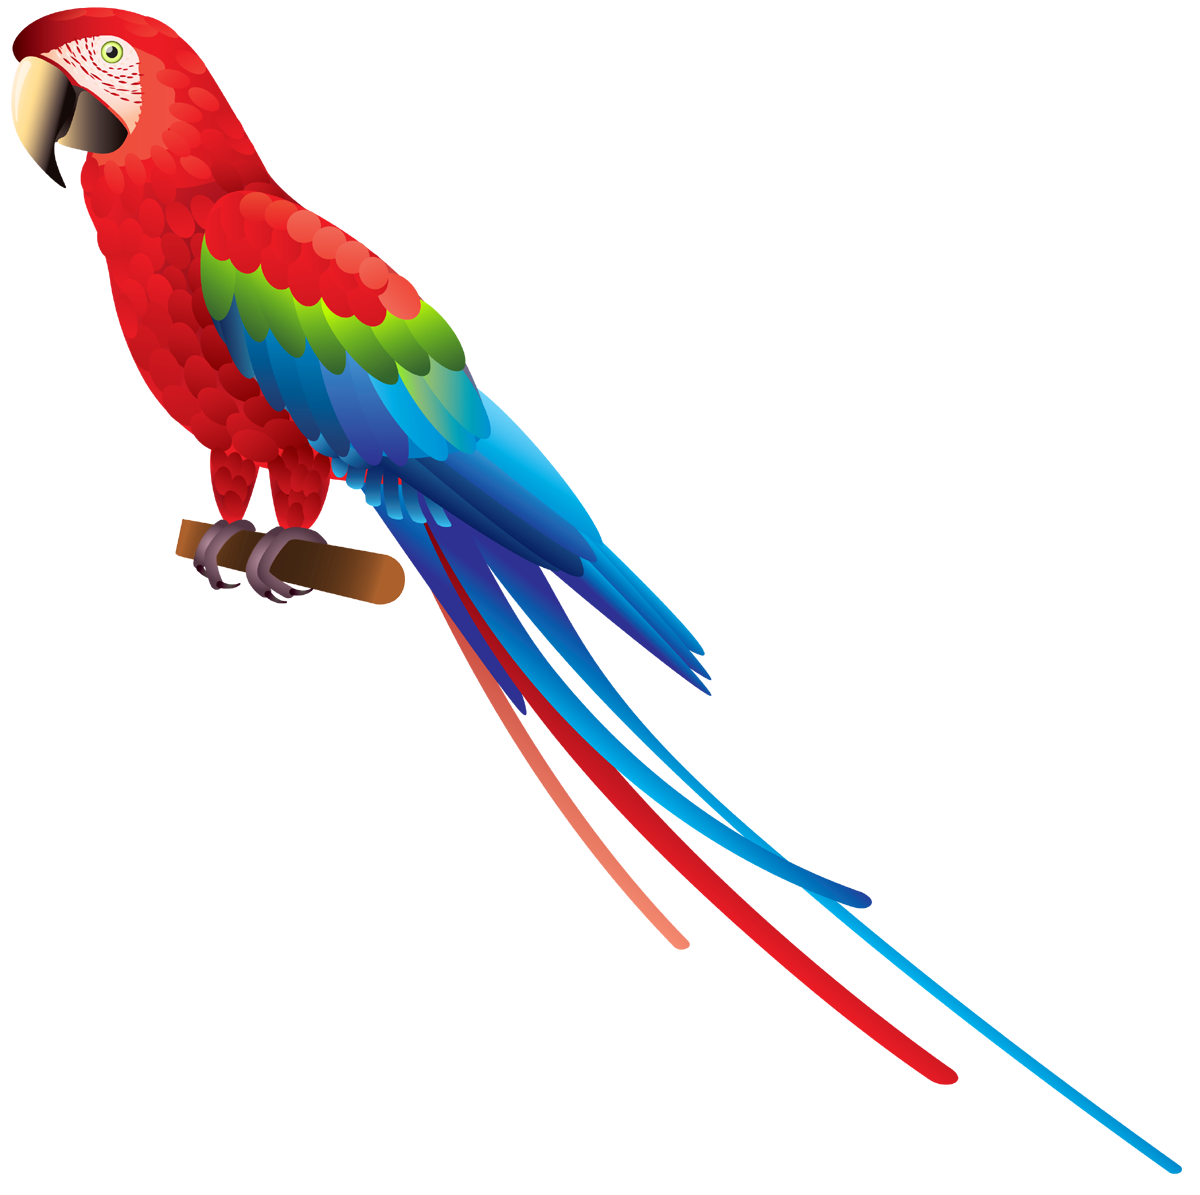 Parrot clipart budgie. Png images free download